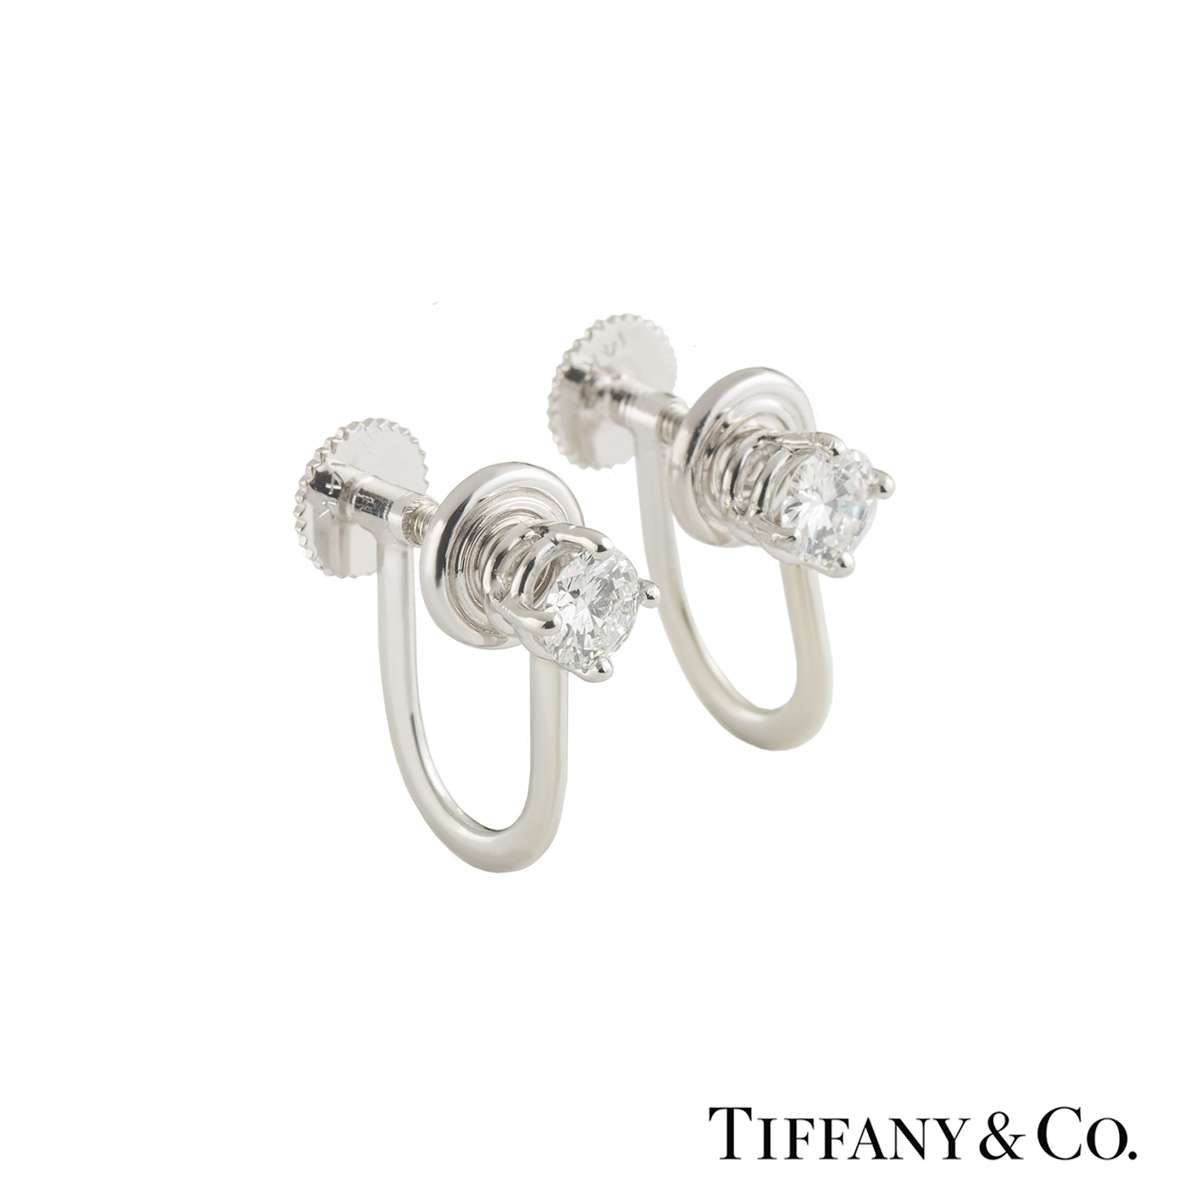 Tiffany & Co. Platinum Diamond Earrings 0.66ct F/VS+